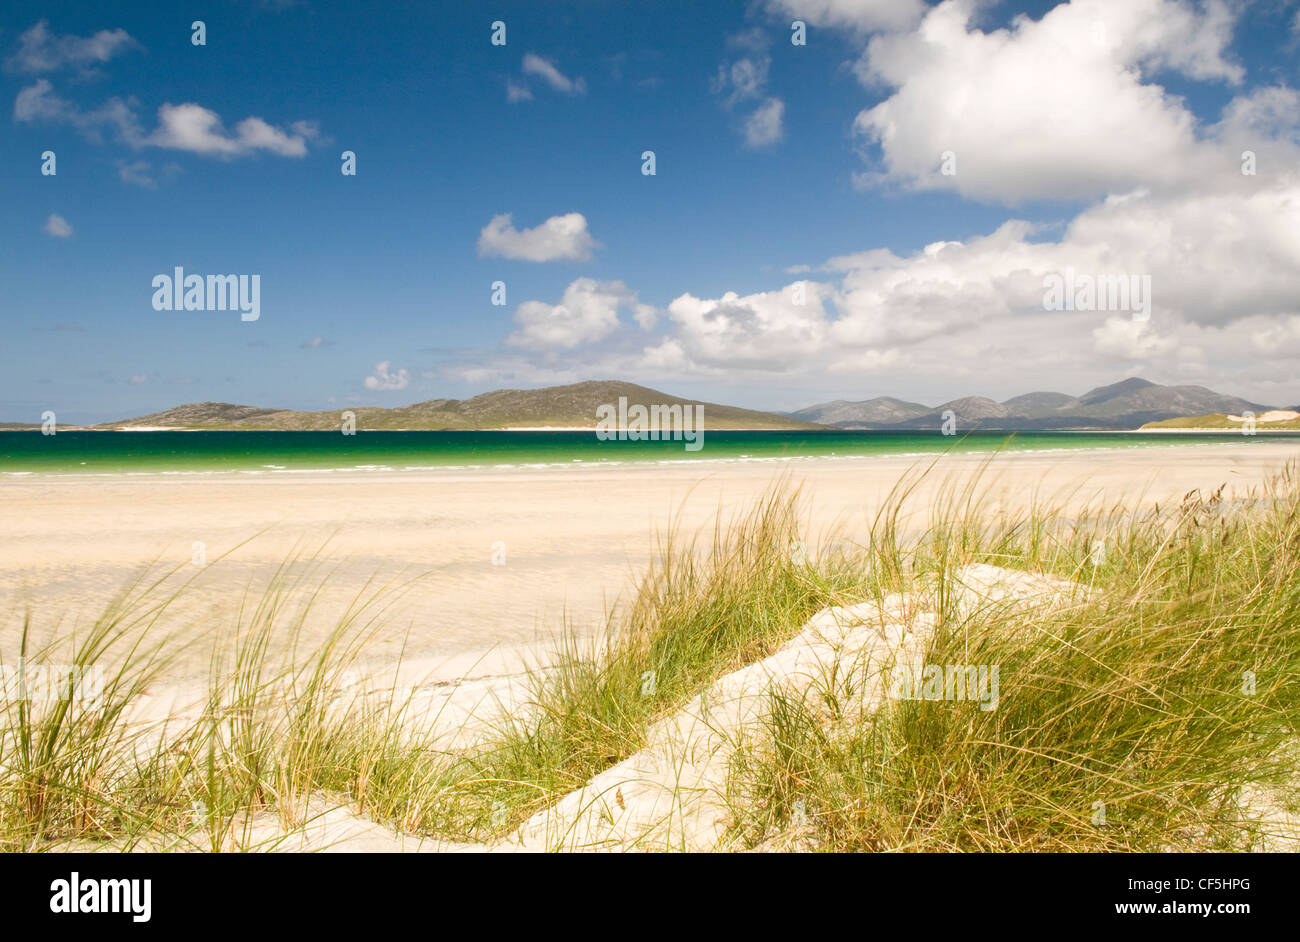 Looking out to sea from the sand dunes at Seilebost beach on the Isle of Harris. - Stock Image